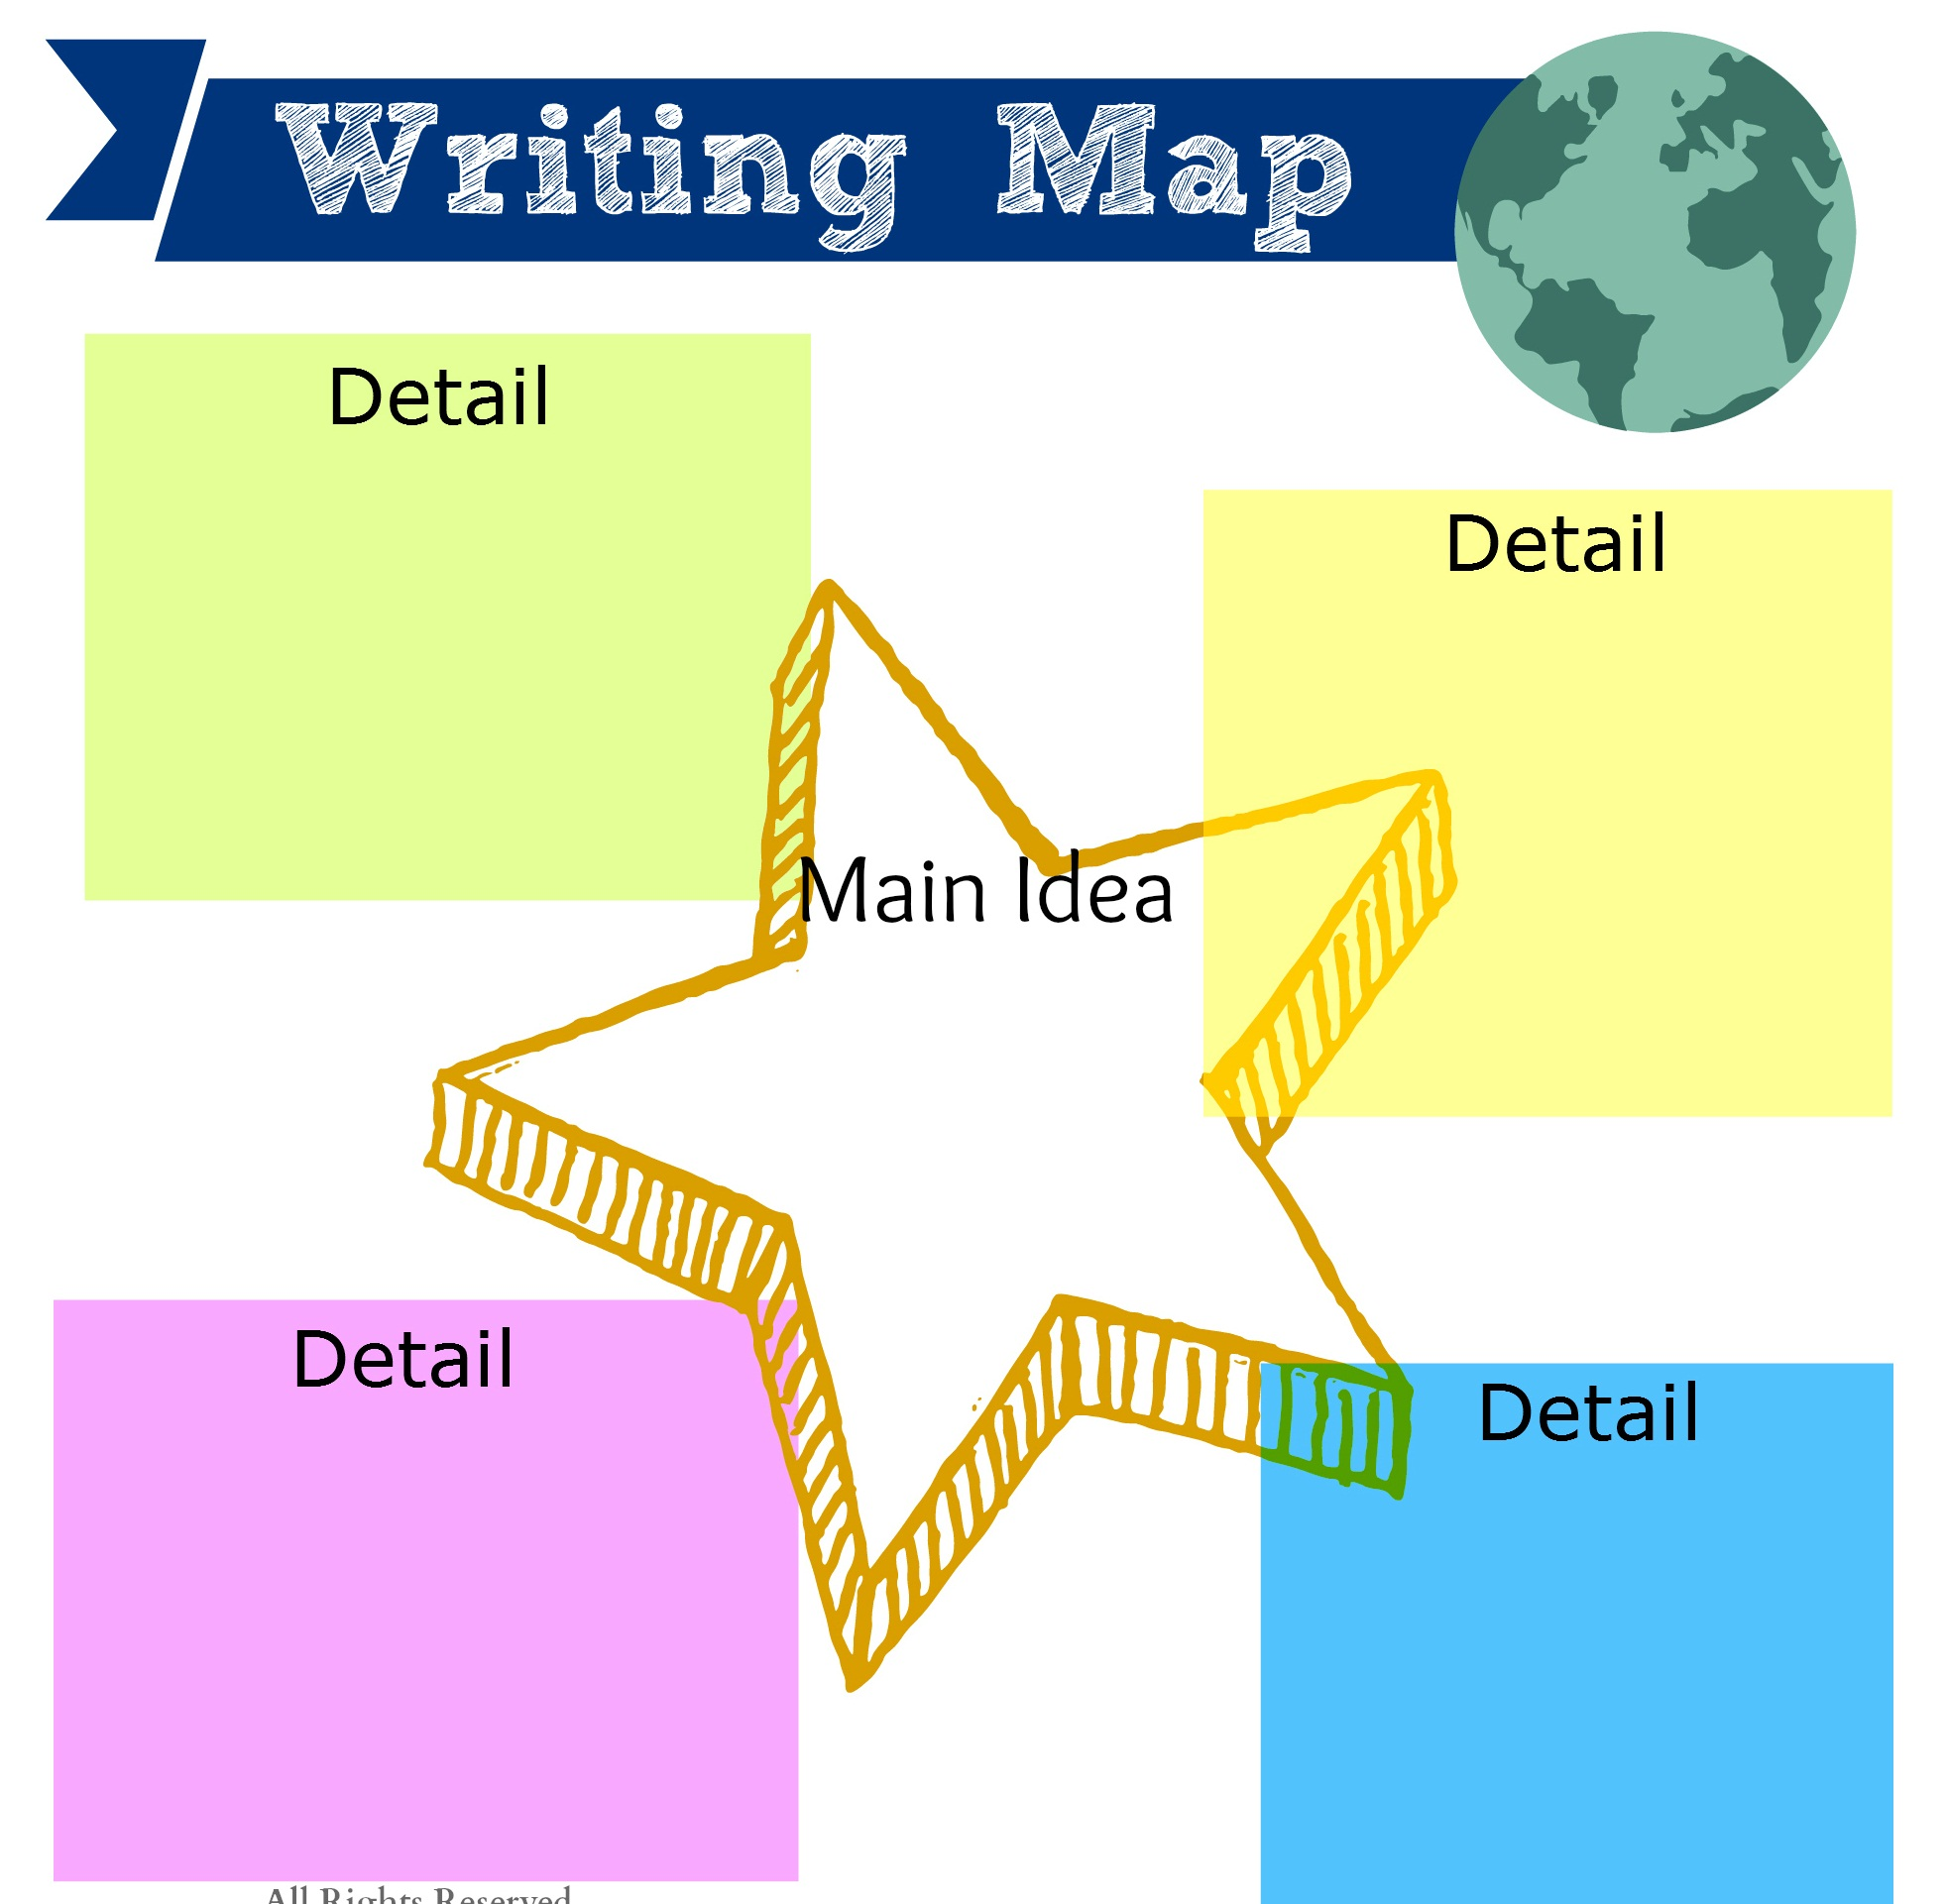 writing essay map This collection of 10 pdf graphic organizers for planning and writing includes • 3 paragraph essay planning map • 3 paragraph essay planning map (customizable) • event spider • event.